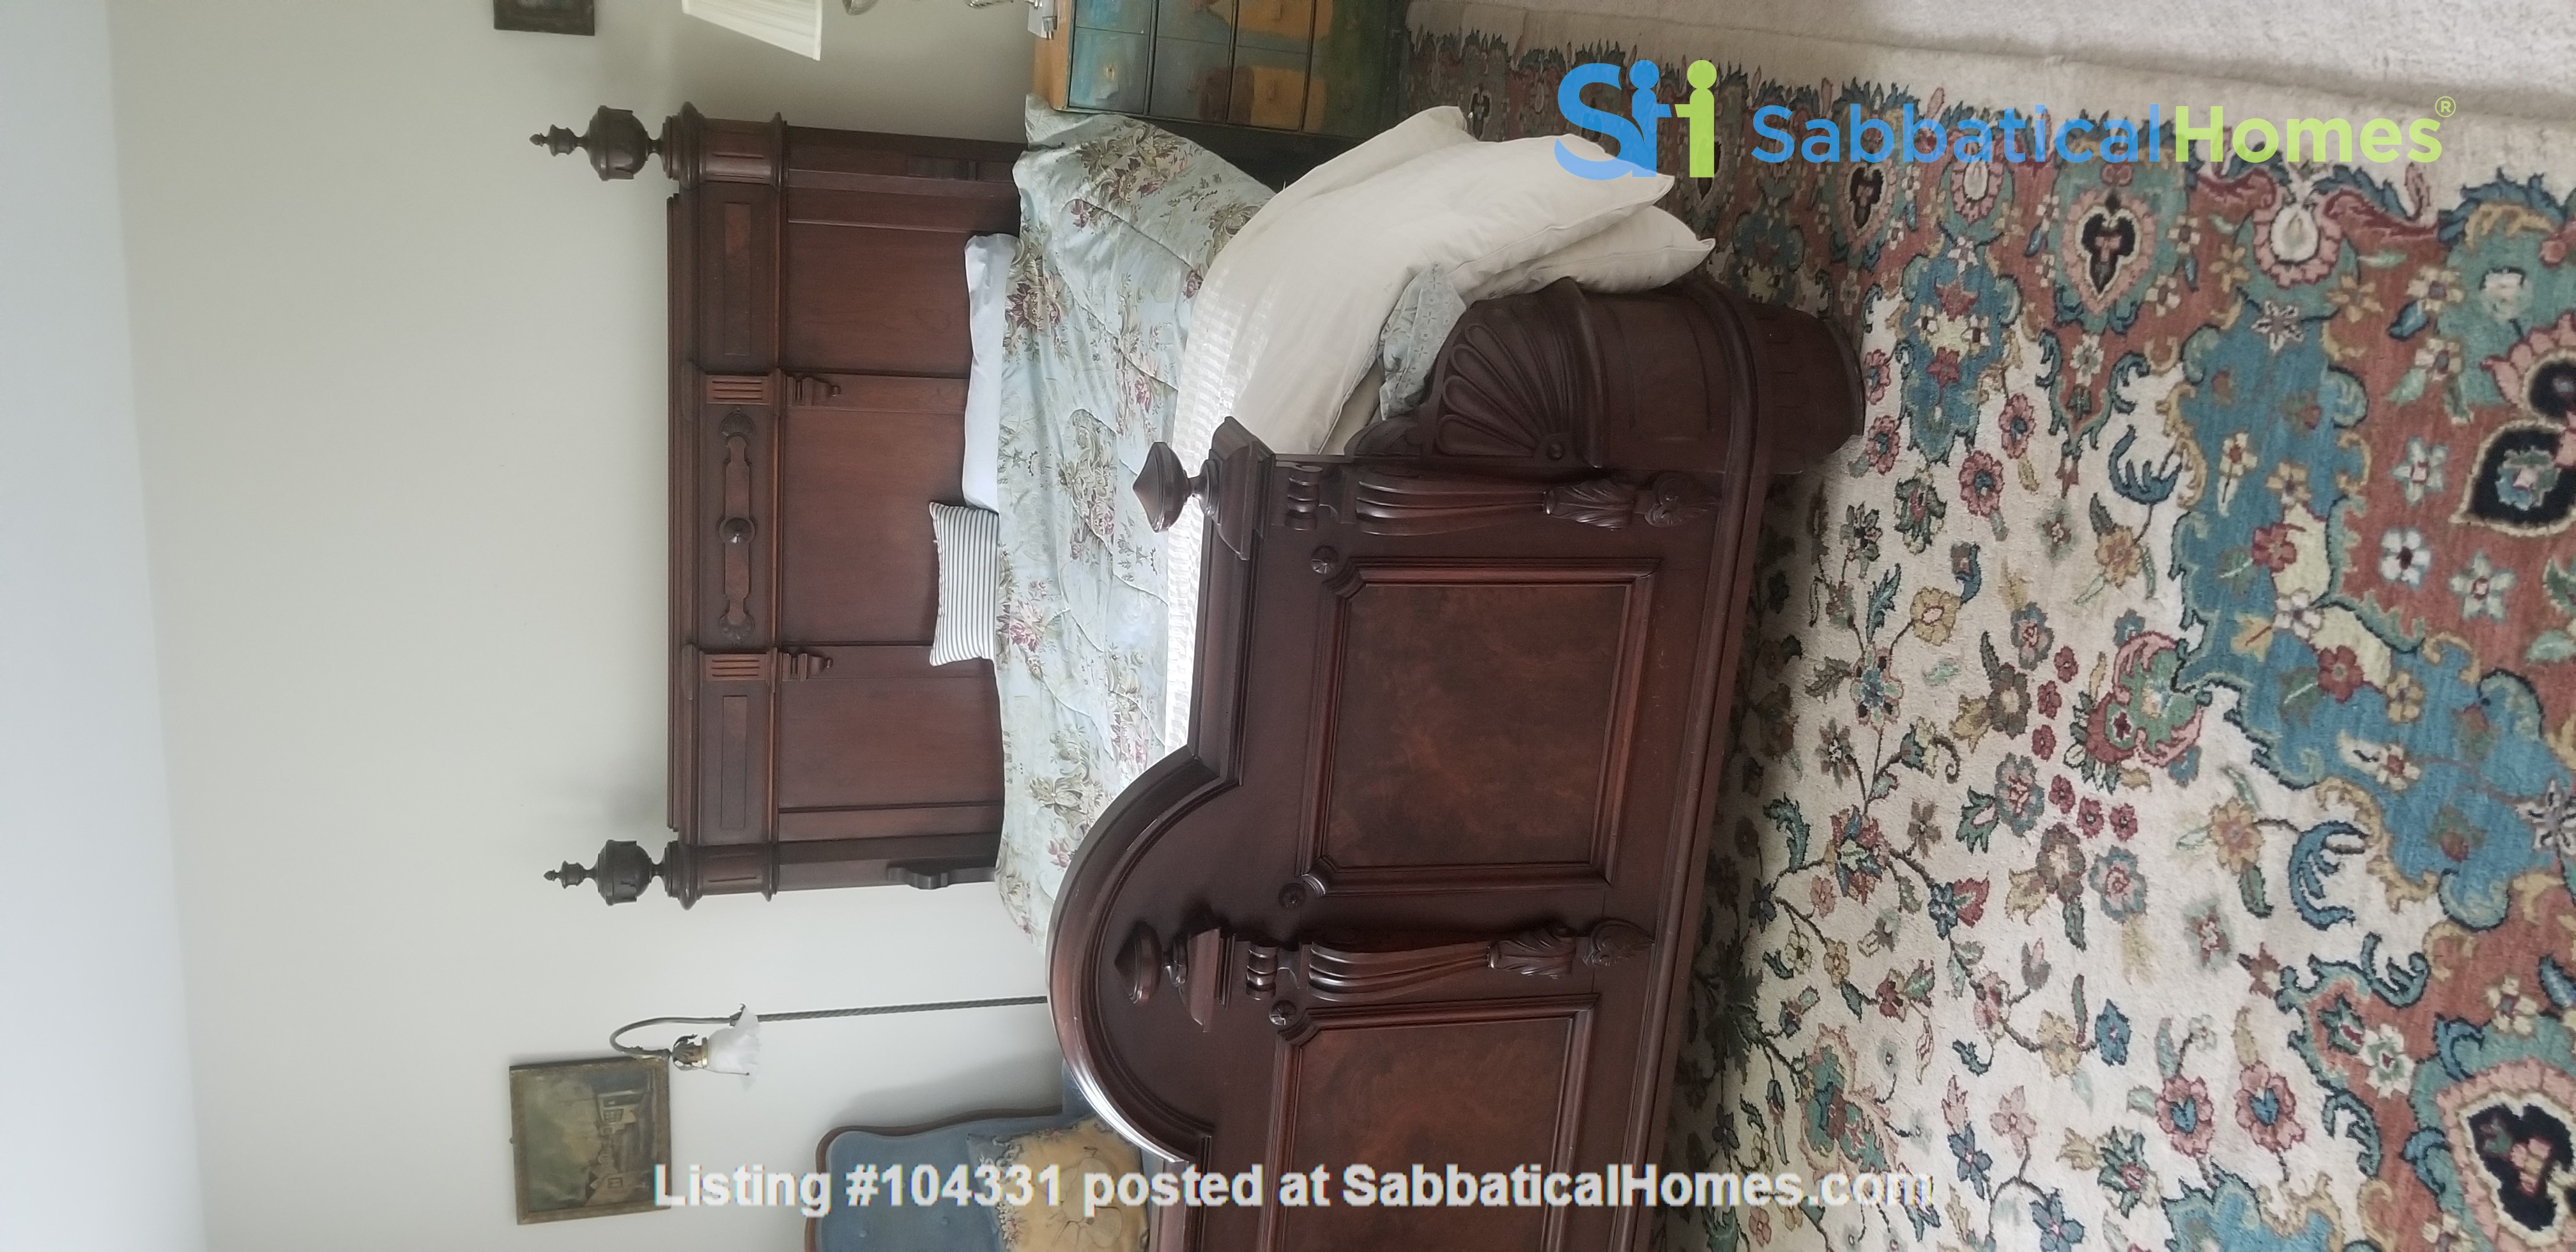 Large 5 bedroom/4 baths house in hospitable quiet neighborhood, close to DC Home Rental in Chevy Chase, Maryland, United States 7